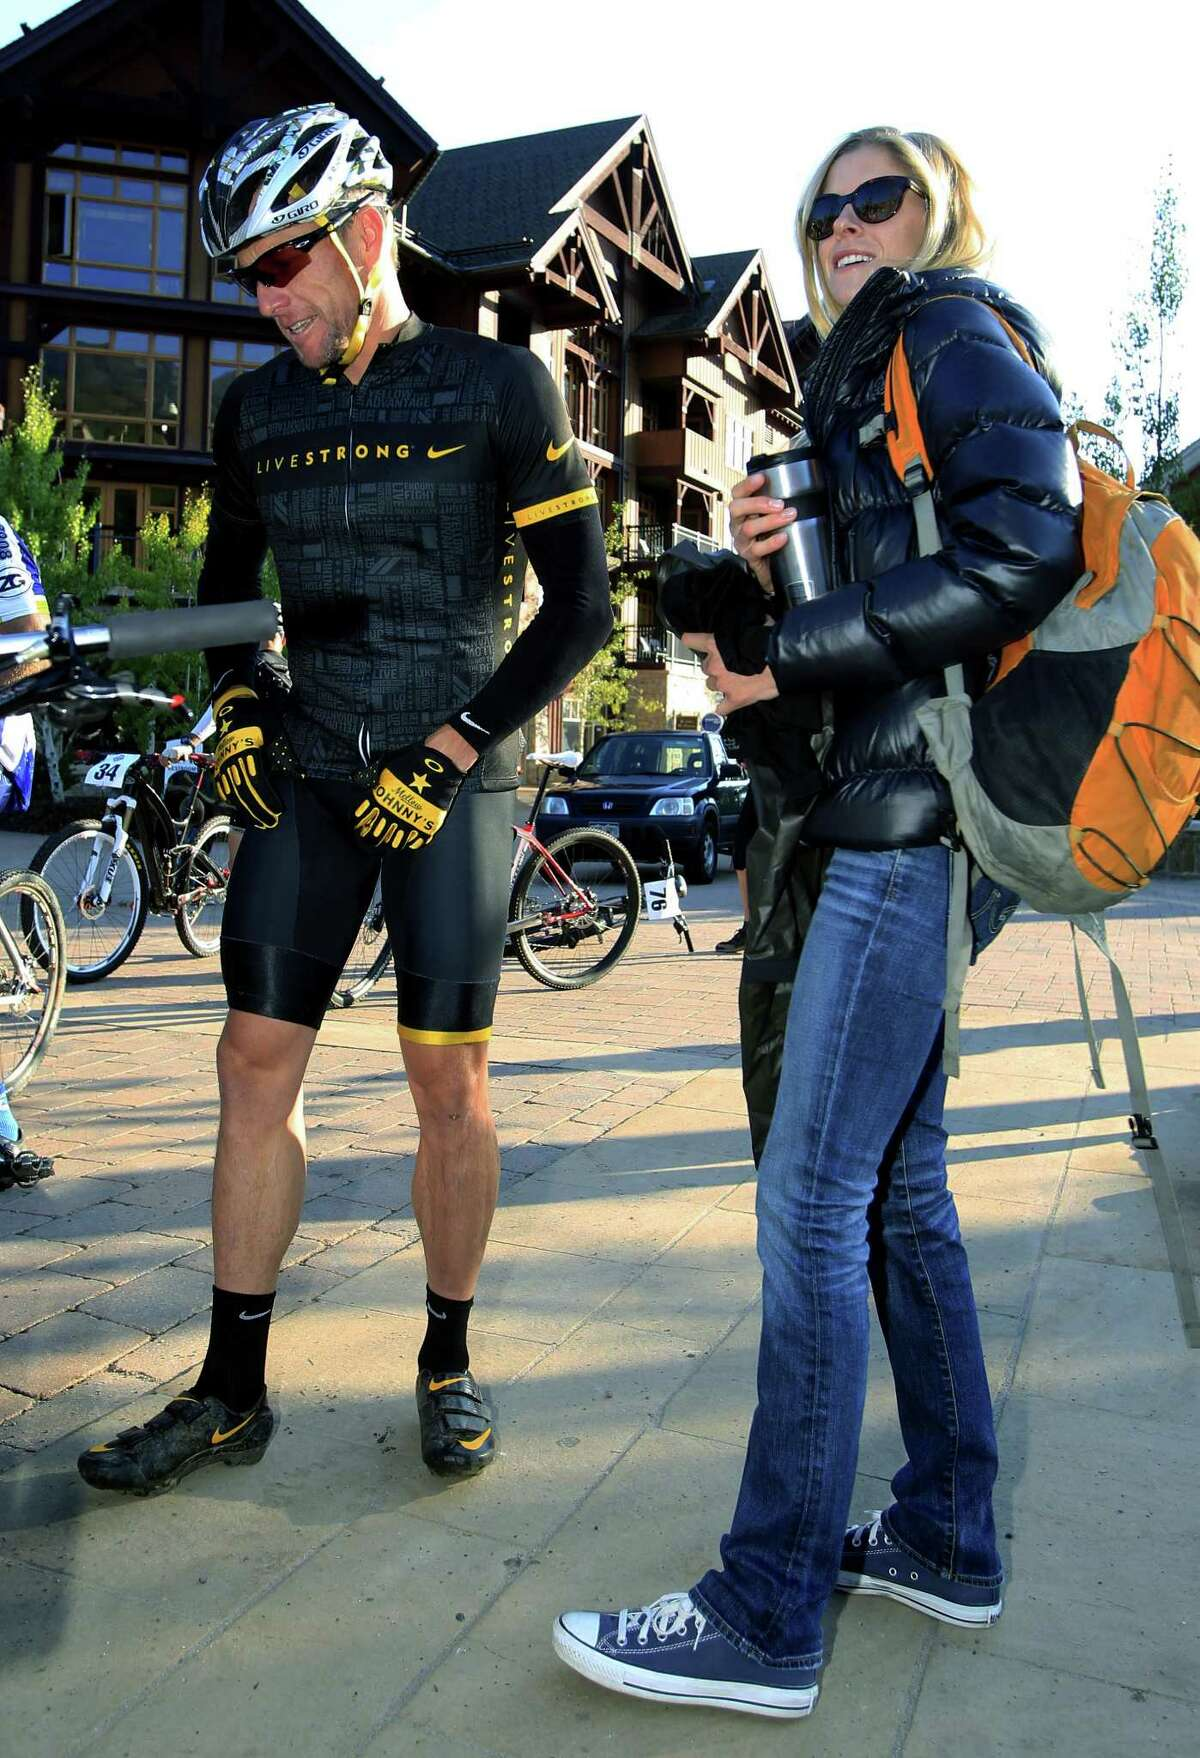 Authorities say Lance Armstrong hit two parked cars after a night of partying in Aspen but agreed to let his girlfriend take the blame to avoid national attention. Police say they cited Armstrong after the Dec. 28 hit-and-run, but only after his girlfriend, Anna Hansen, admitted to lying for him.